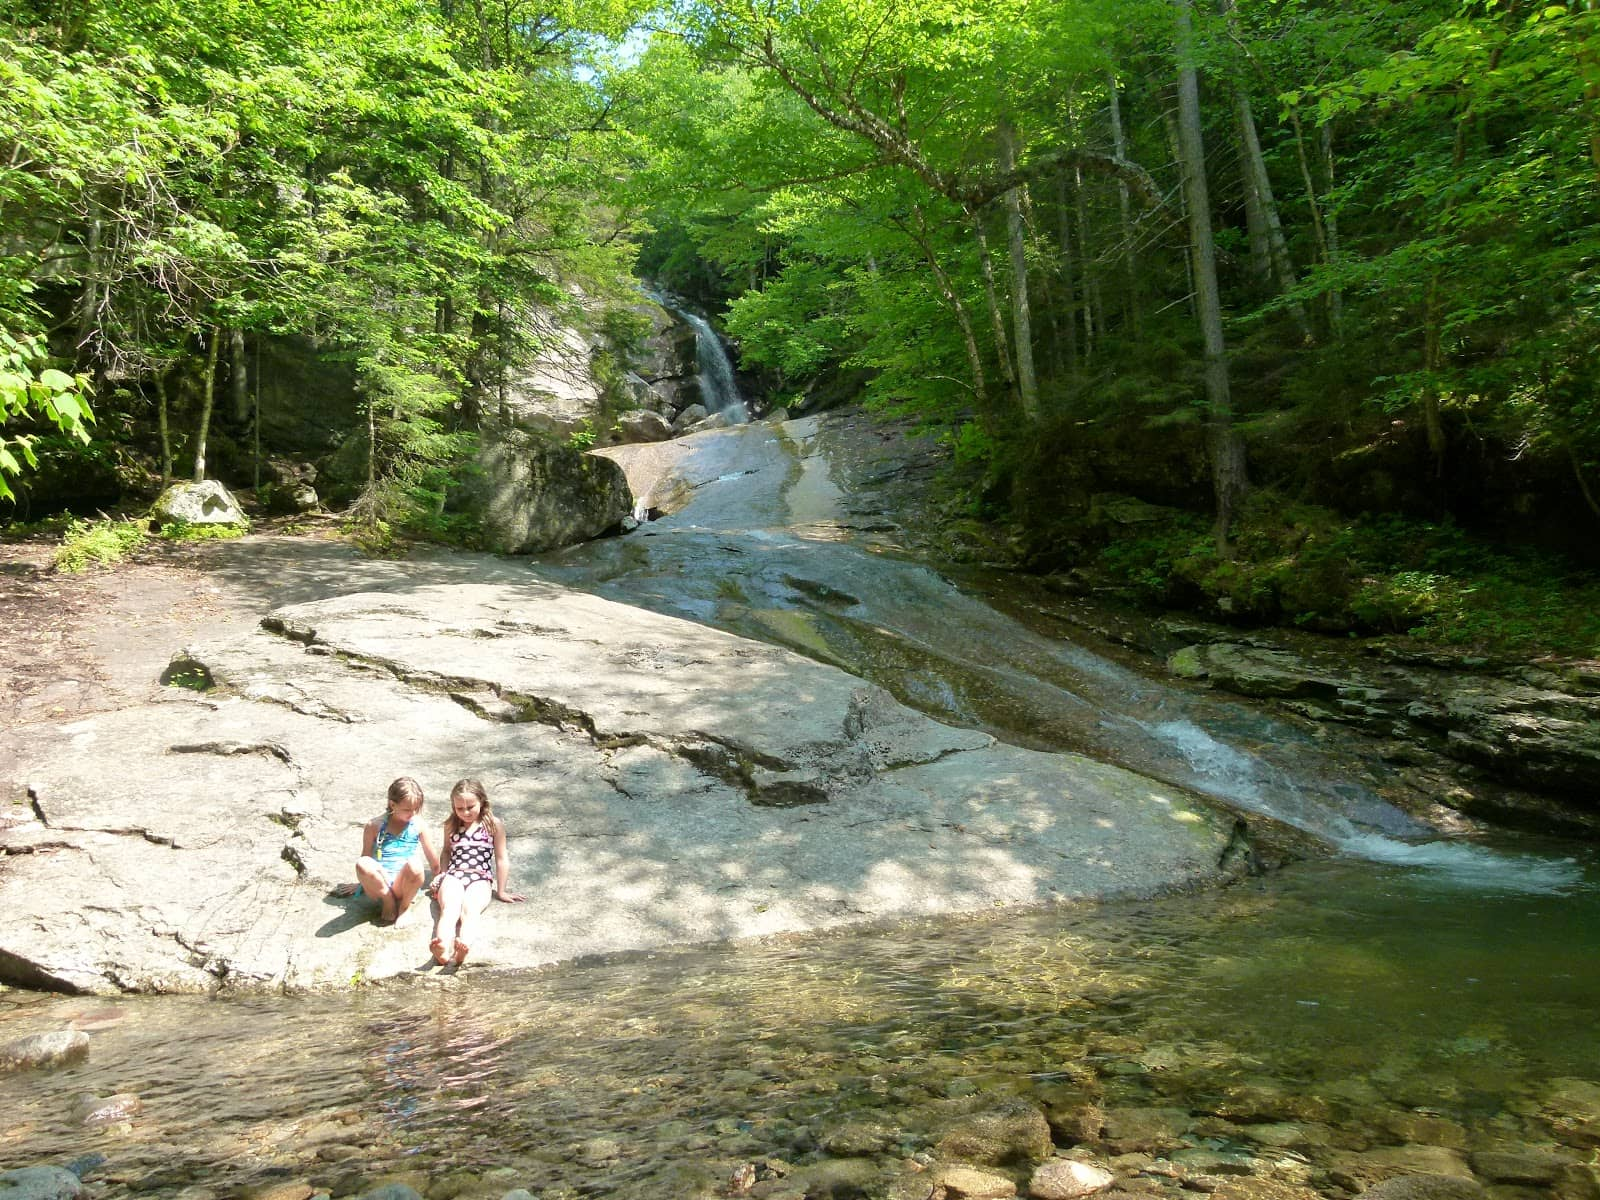 From alpine cascades to hidden waterfalls, explore these 5 scenic waterfall hikes in the White Mountains of New Hampshire.